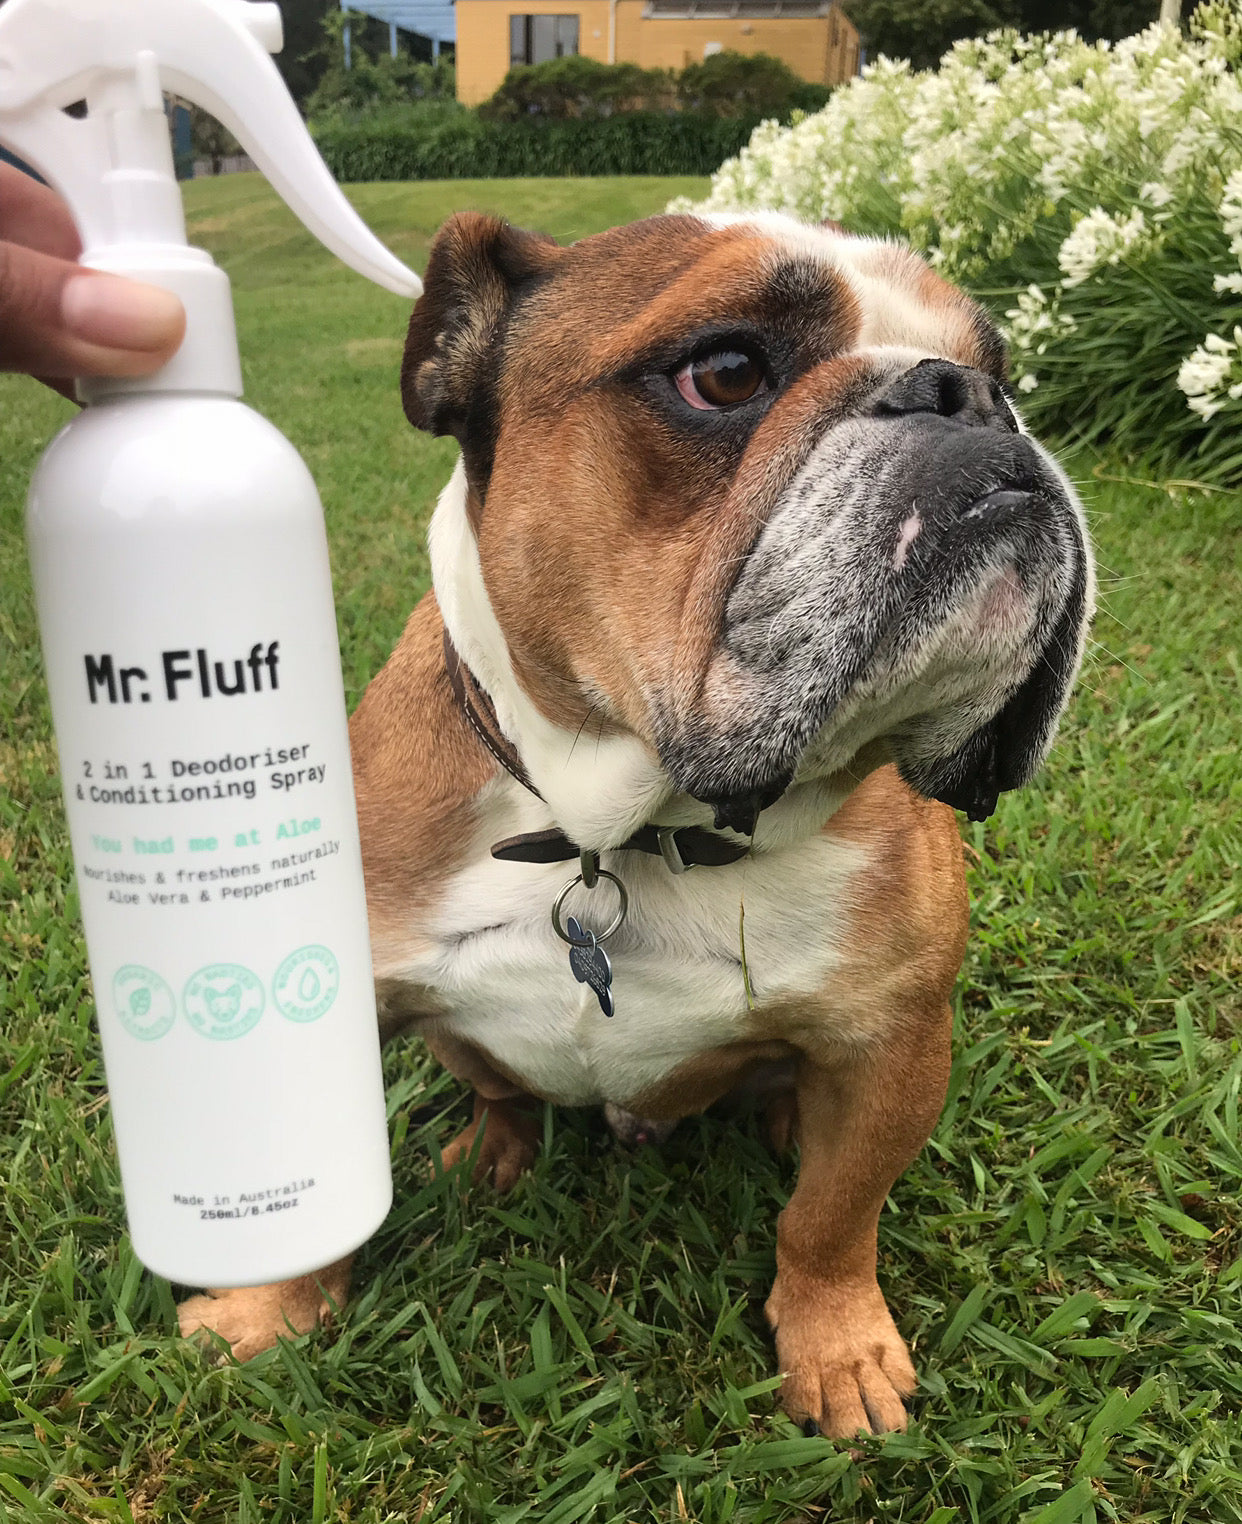 You Had Me At Aloe 2 in 1 Deodoriser & Conditioning Spray | Aloe Vera & Peppermint | Mr. Fluff